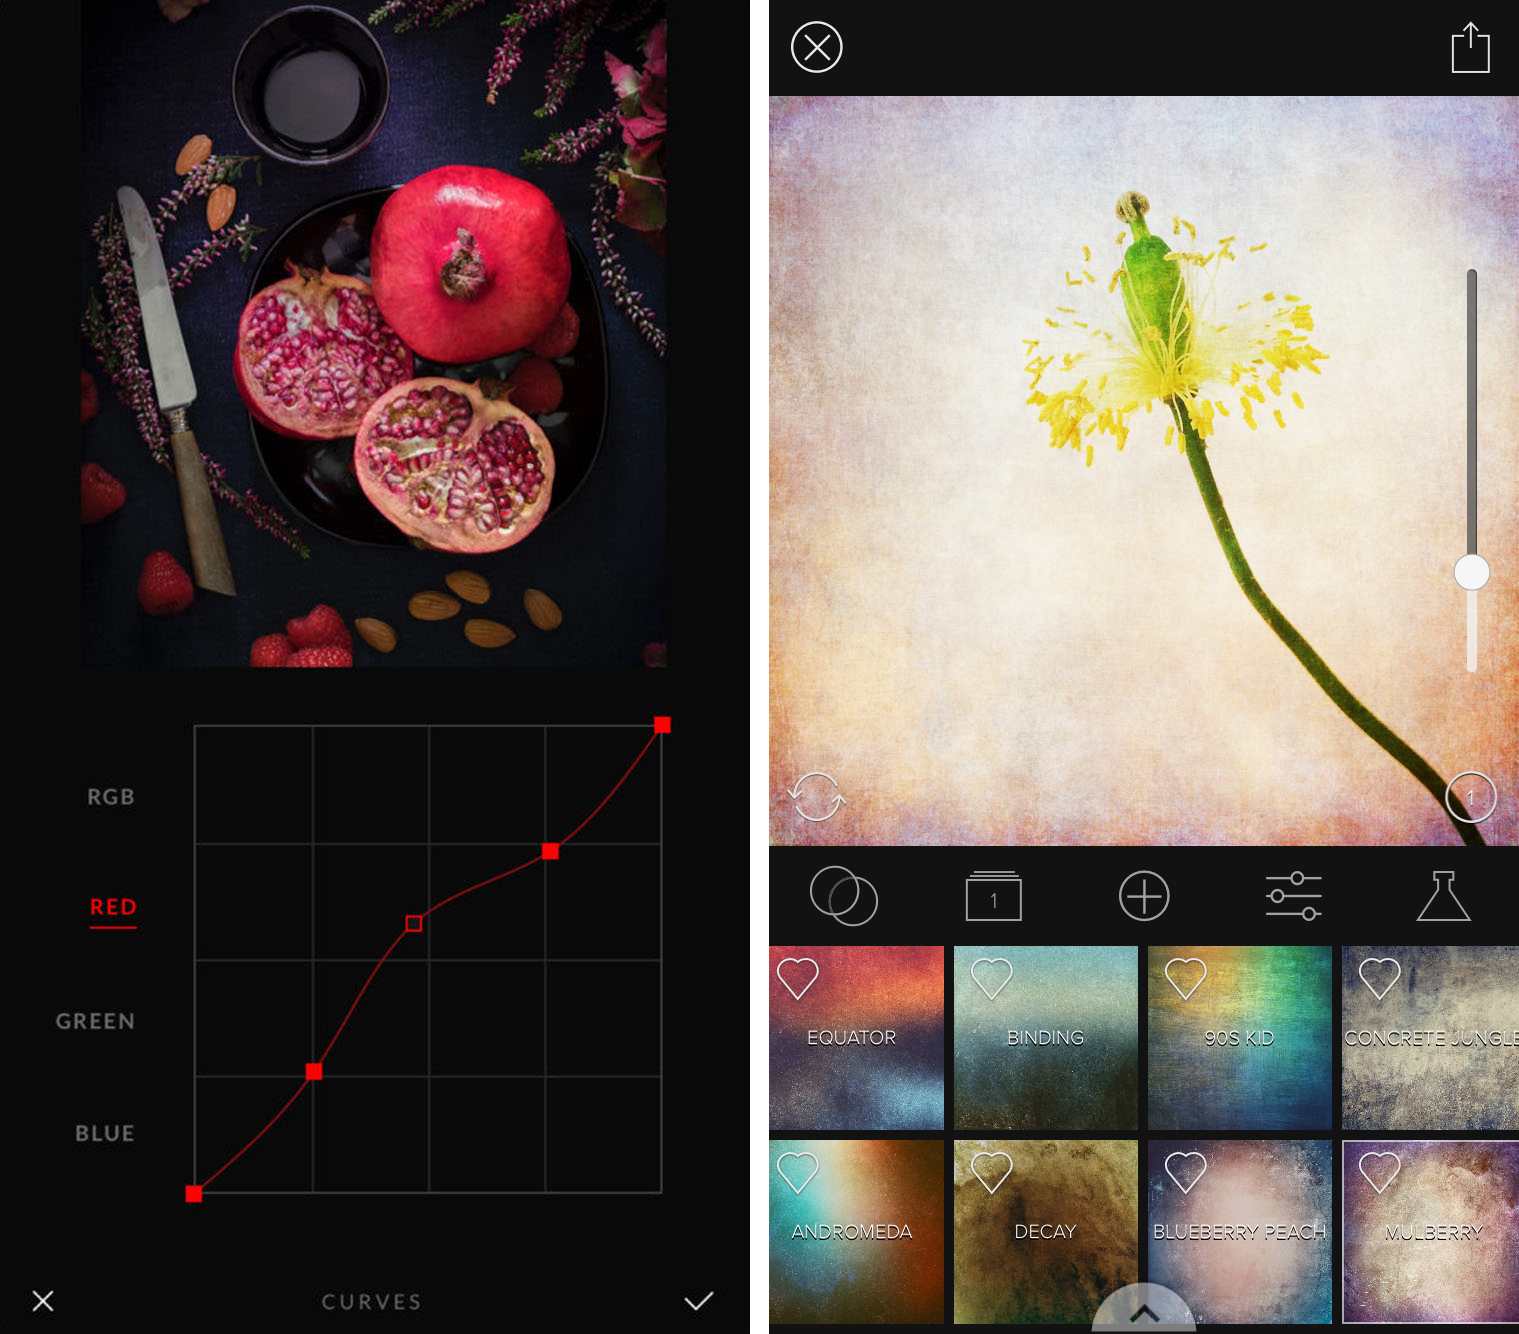 10 Best Photo Apps For Incredible Iphone Photography 2020 Edition